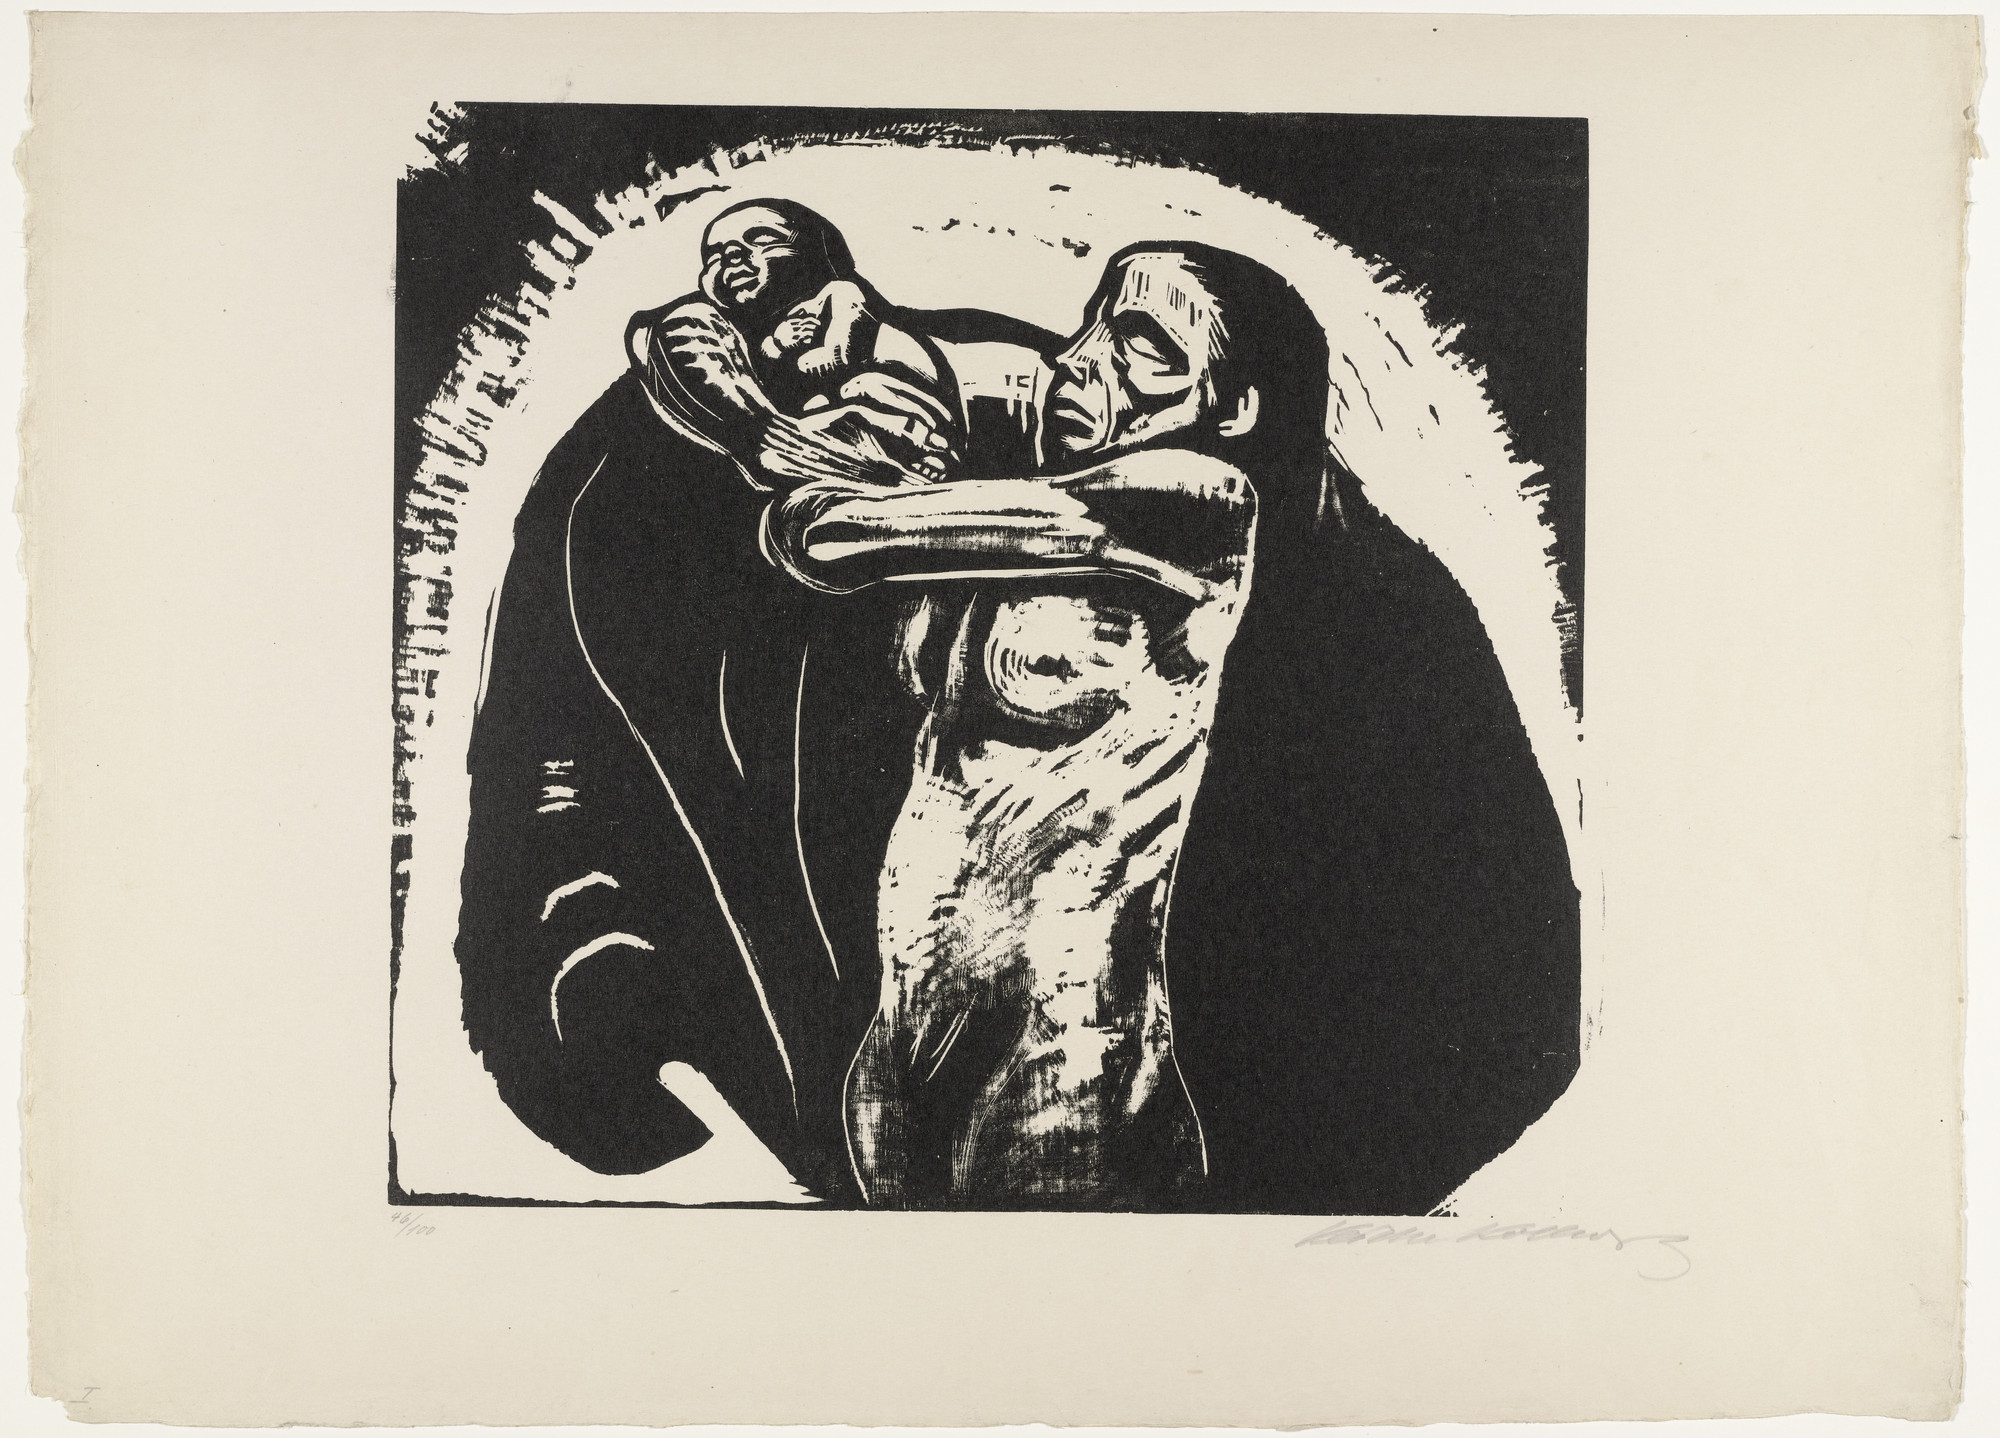 Käthe Kollwitz. The Sacrifice (Das Opfer) from War (Krieg). 1922, published 1923